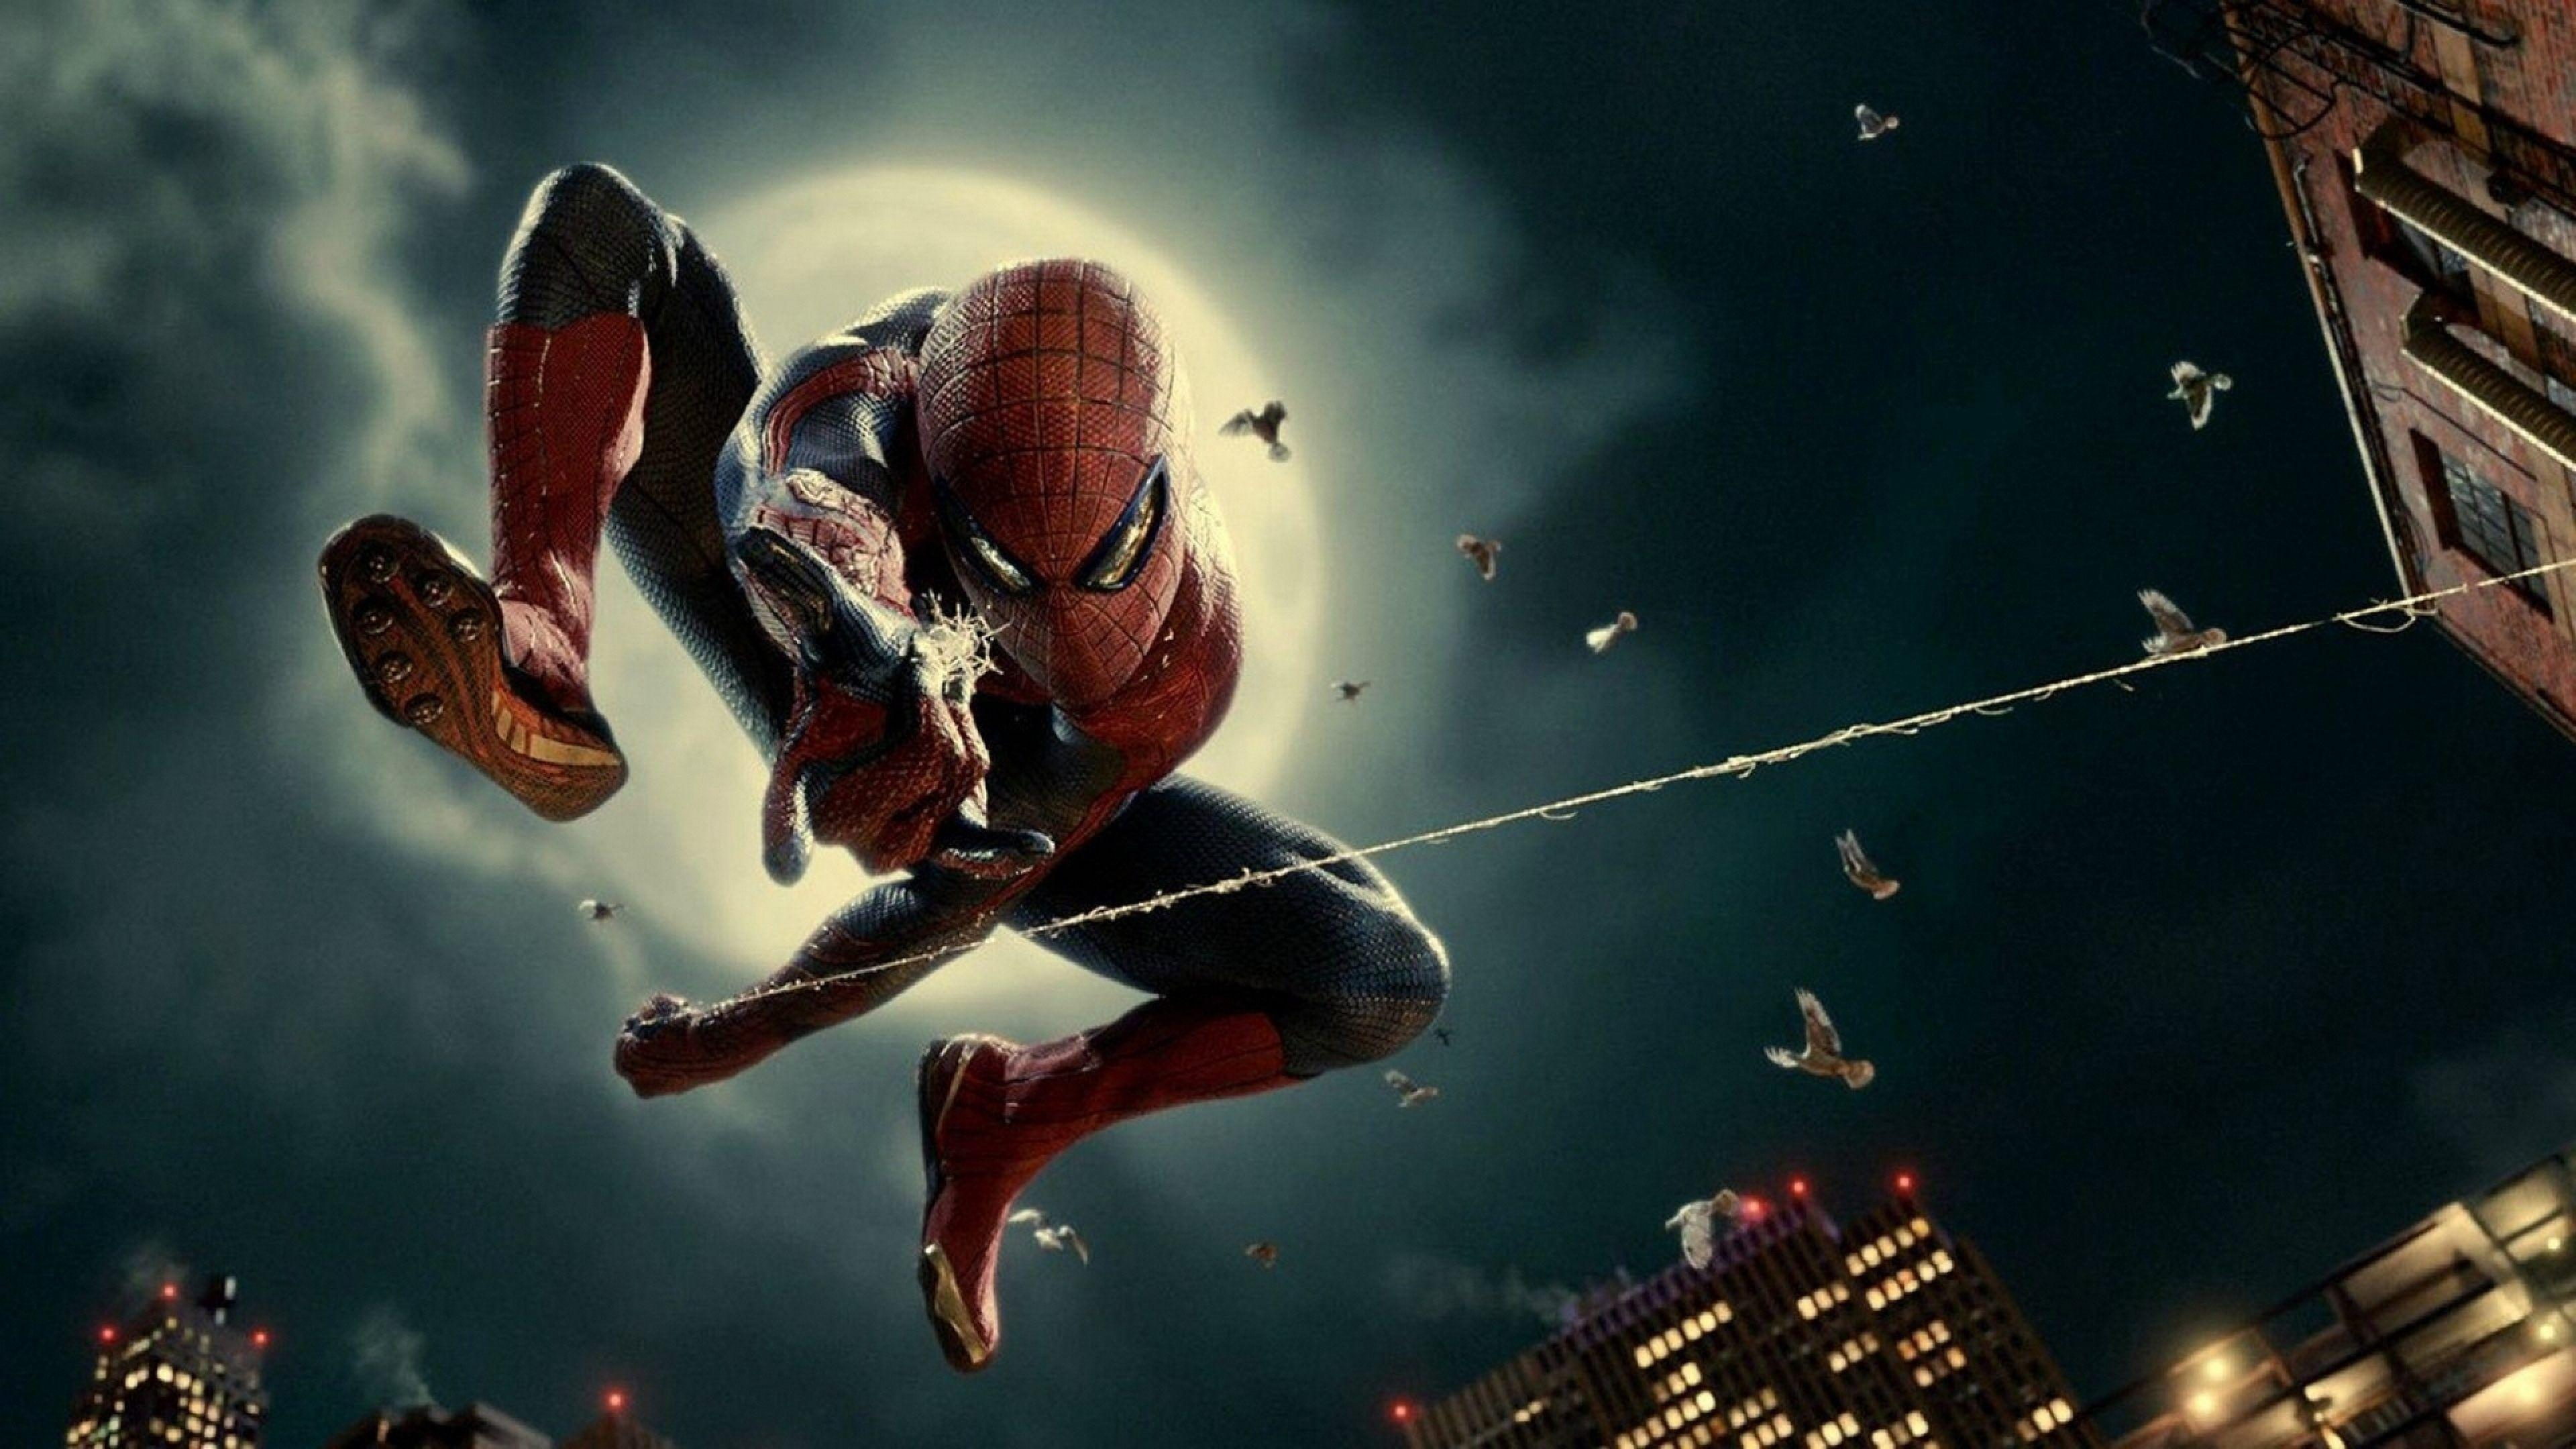 Spiderman Wallpapers HD Download For Desktop and Mobile